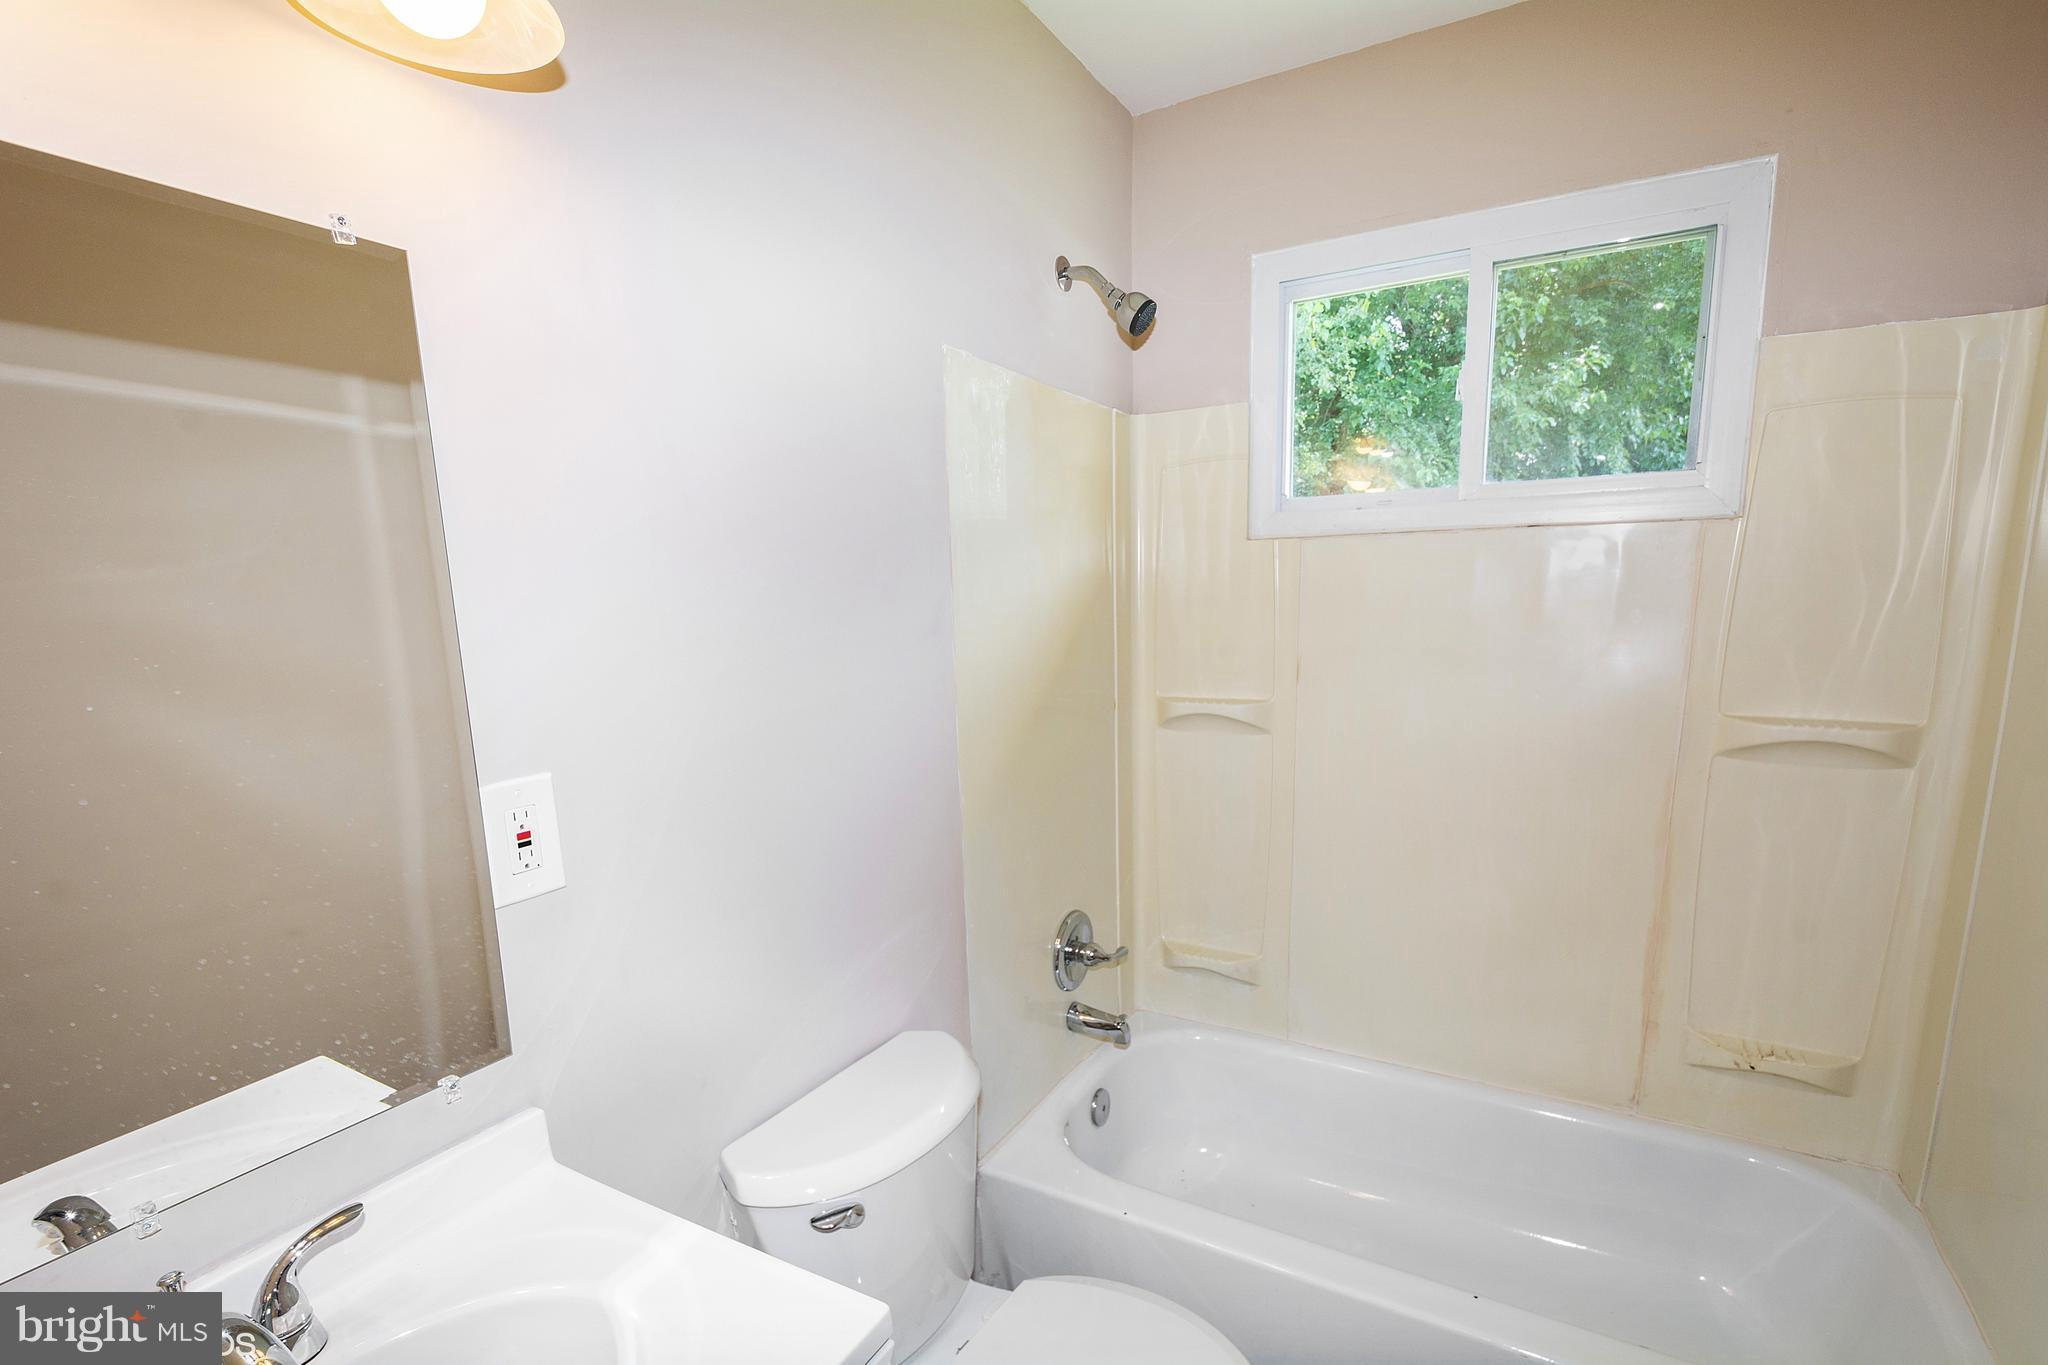 7003 INDEPENDENCE ST, Capitol Heights, MD 20743 $269,900 www ...